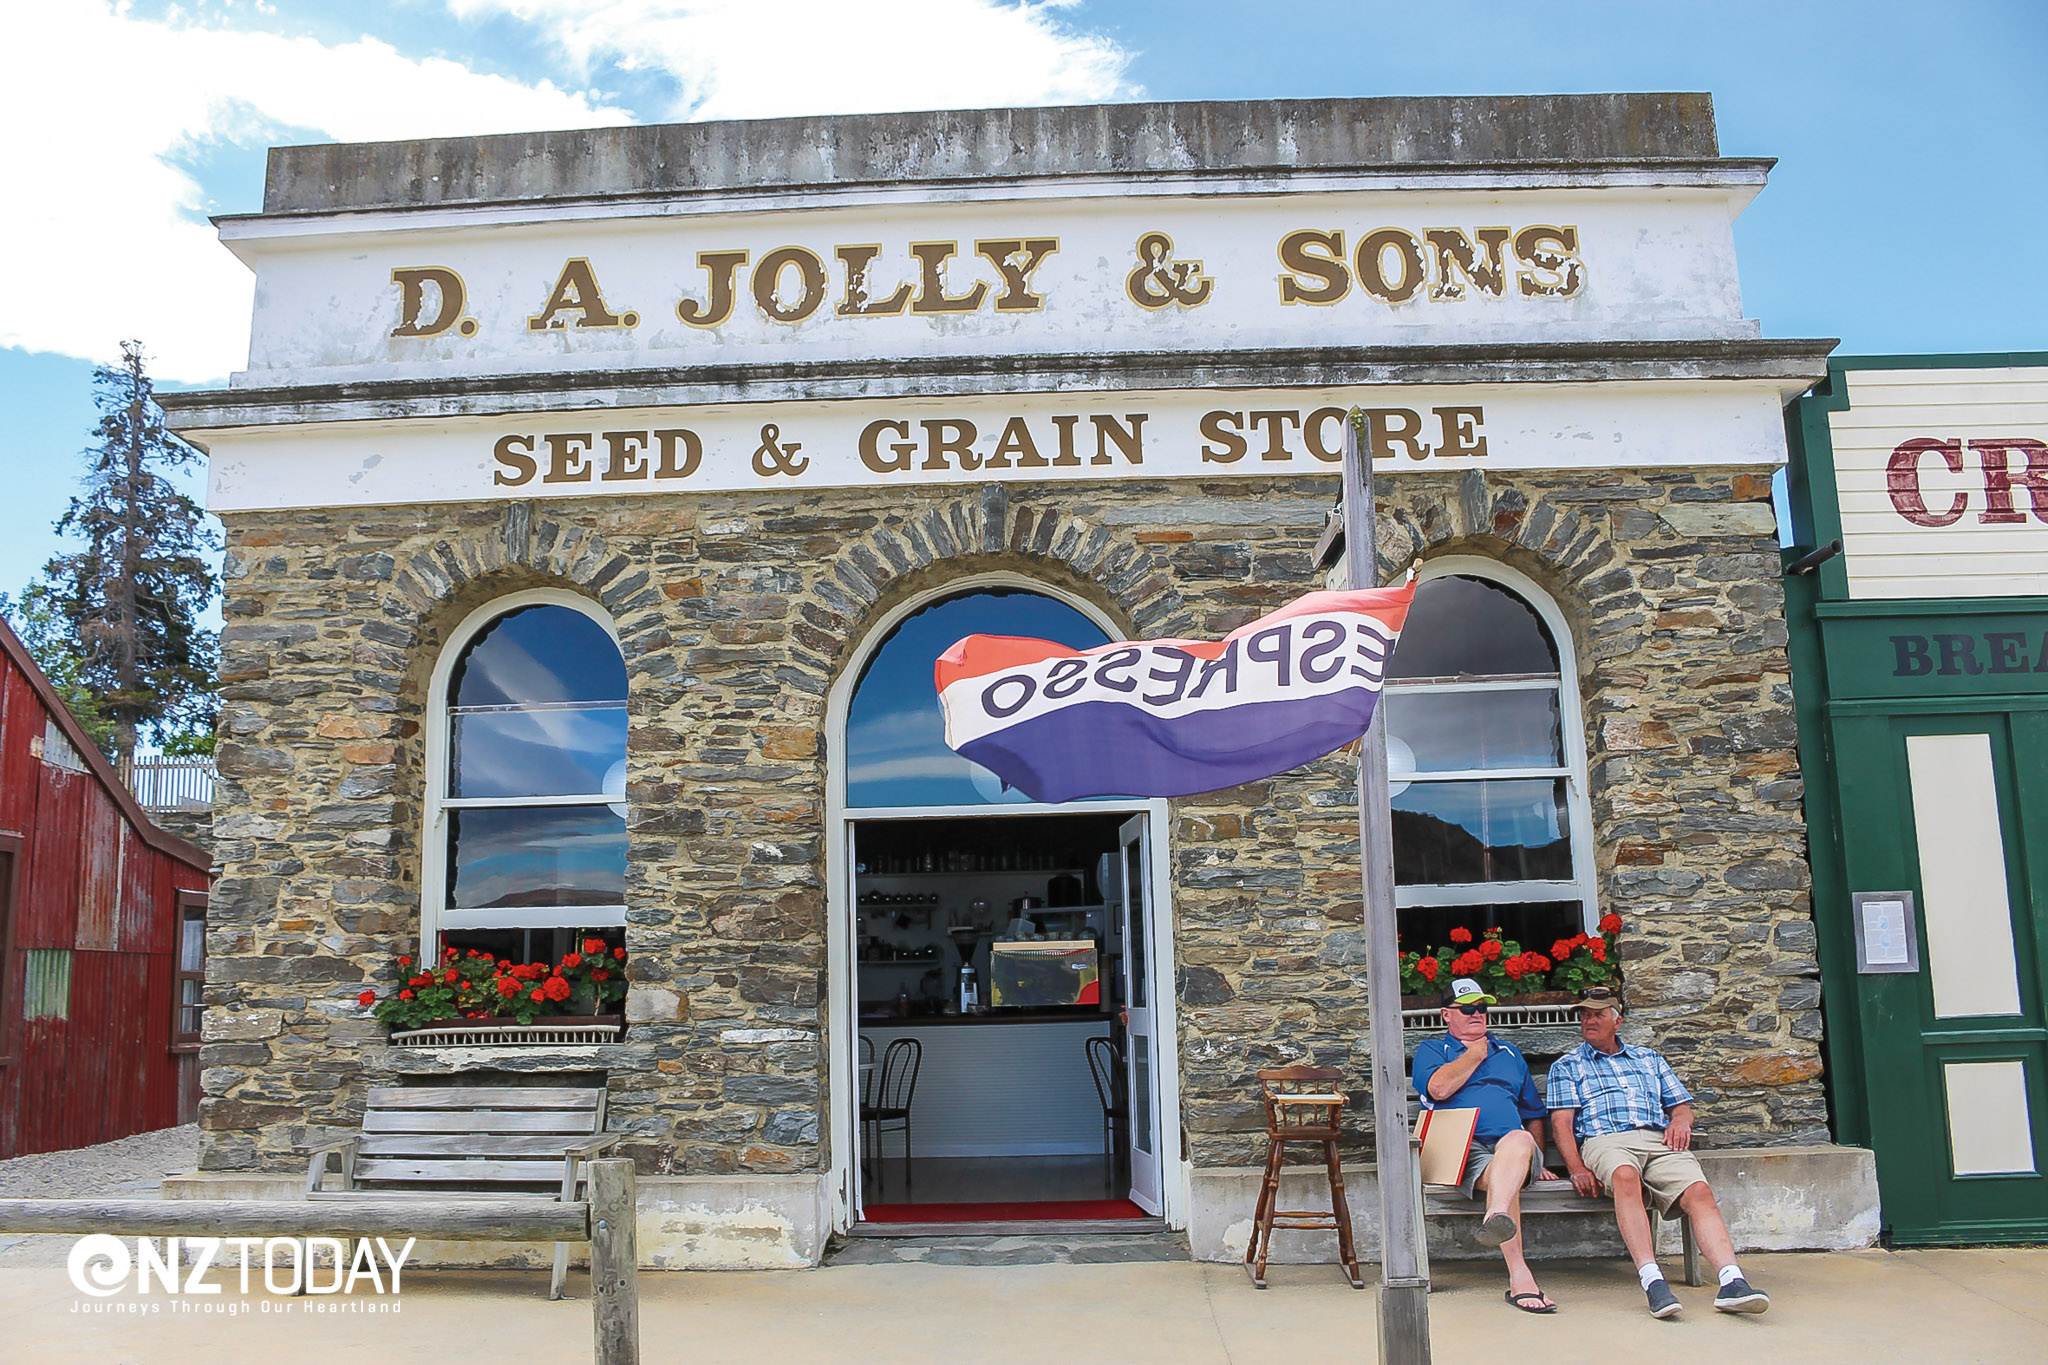 The name Jolly has long links with Cromwell. Two gents relax in the sun in Old Cromwell Town